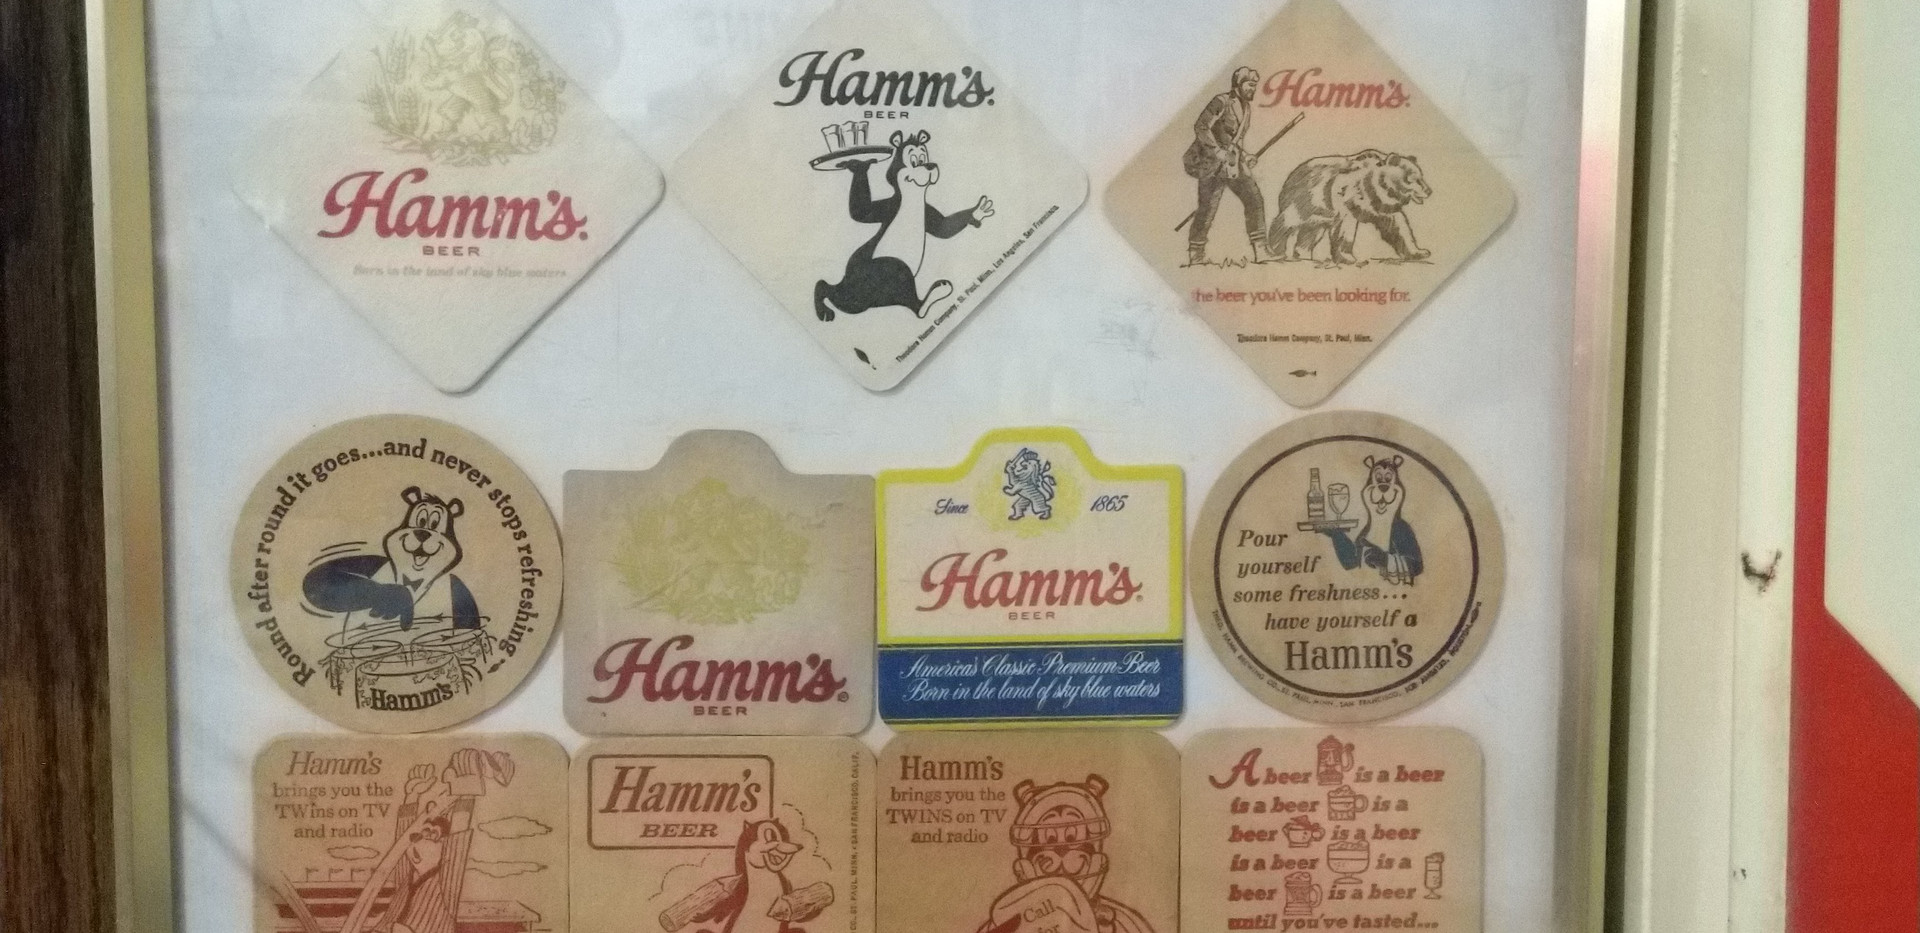 Hamm's Beer Display.jpg